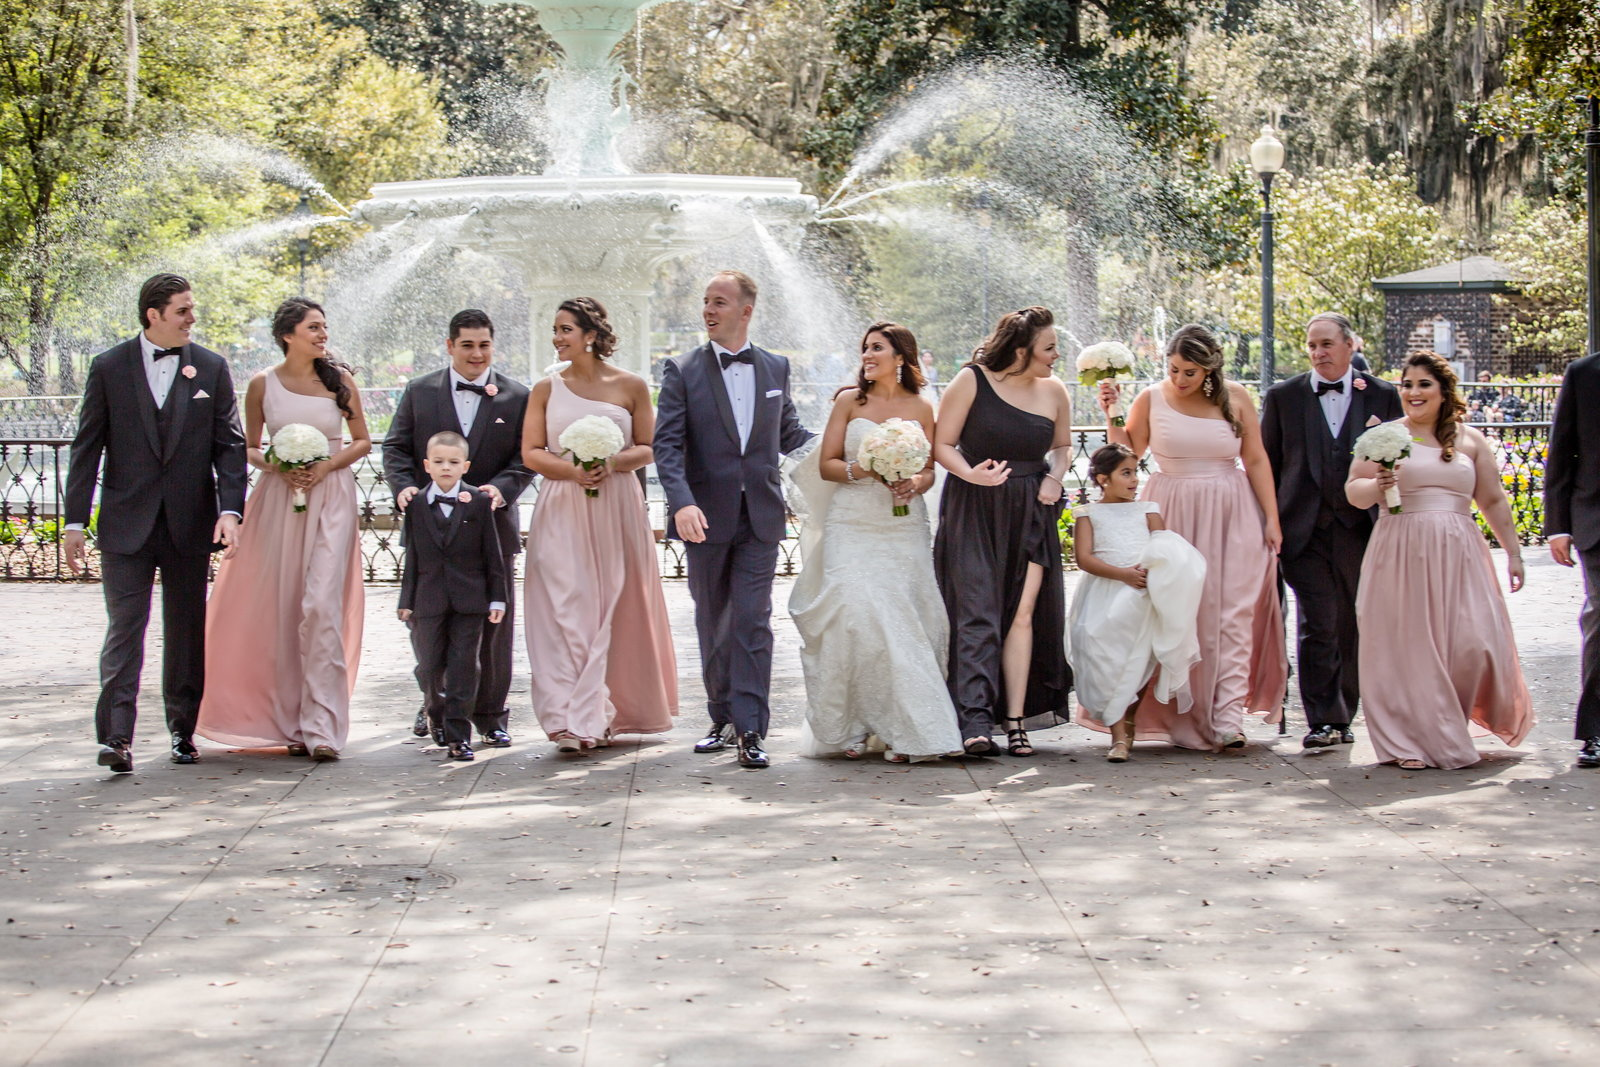 Savannah Wedding, Tiffany + Josh, Bobbi Brinkman Photography